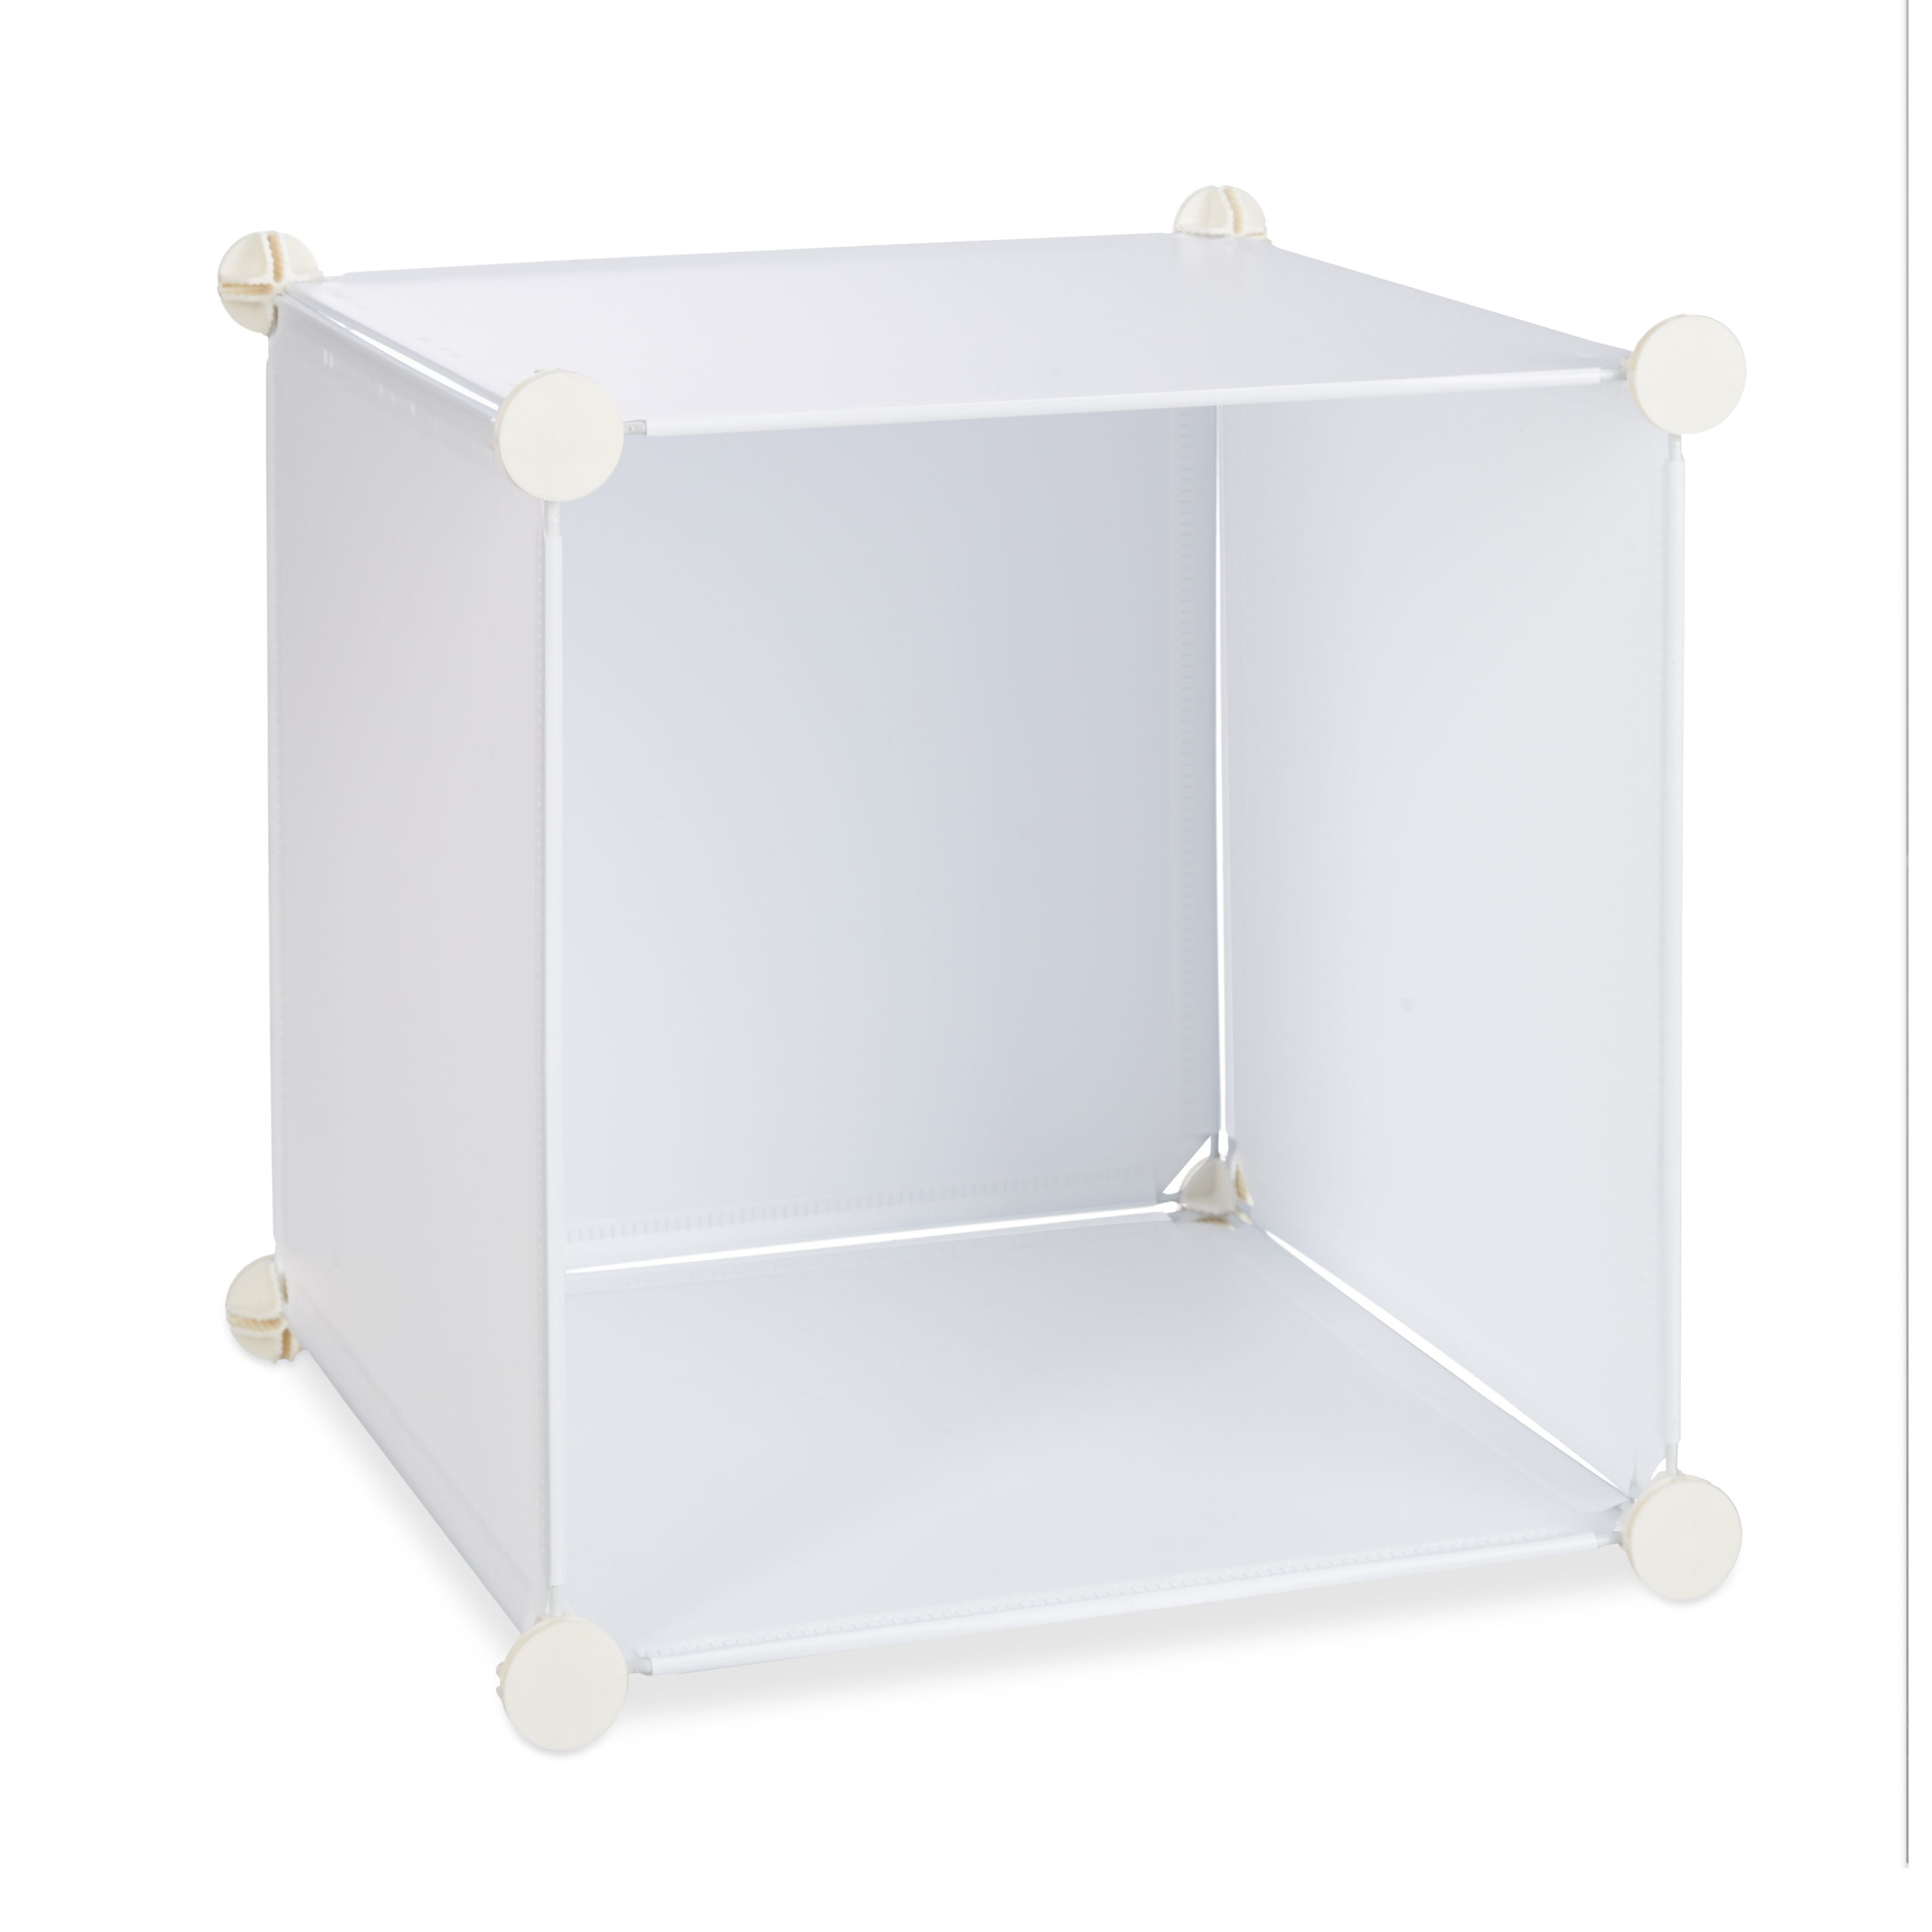 Boltless-Plastic-with-16-Compartments-Shelving-System-DIY-with-doors-Plastic-Cabinet thumbnail 19